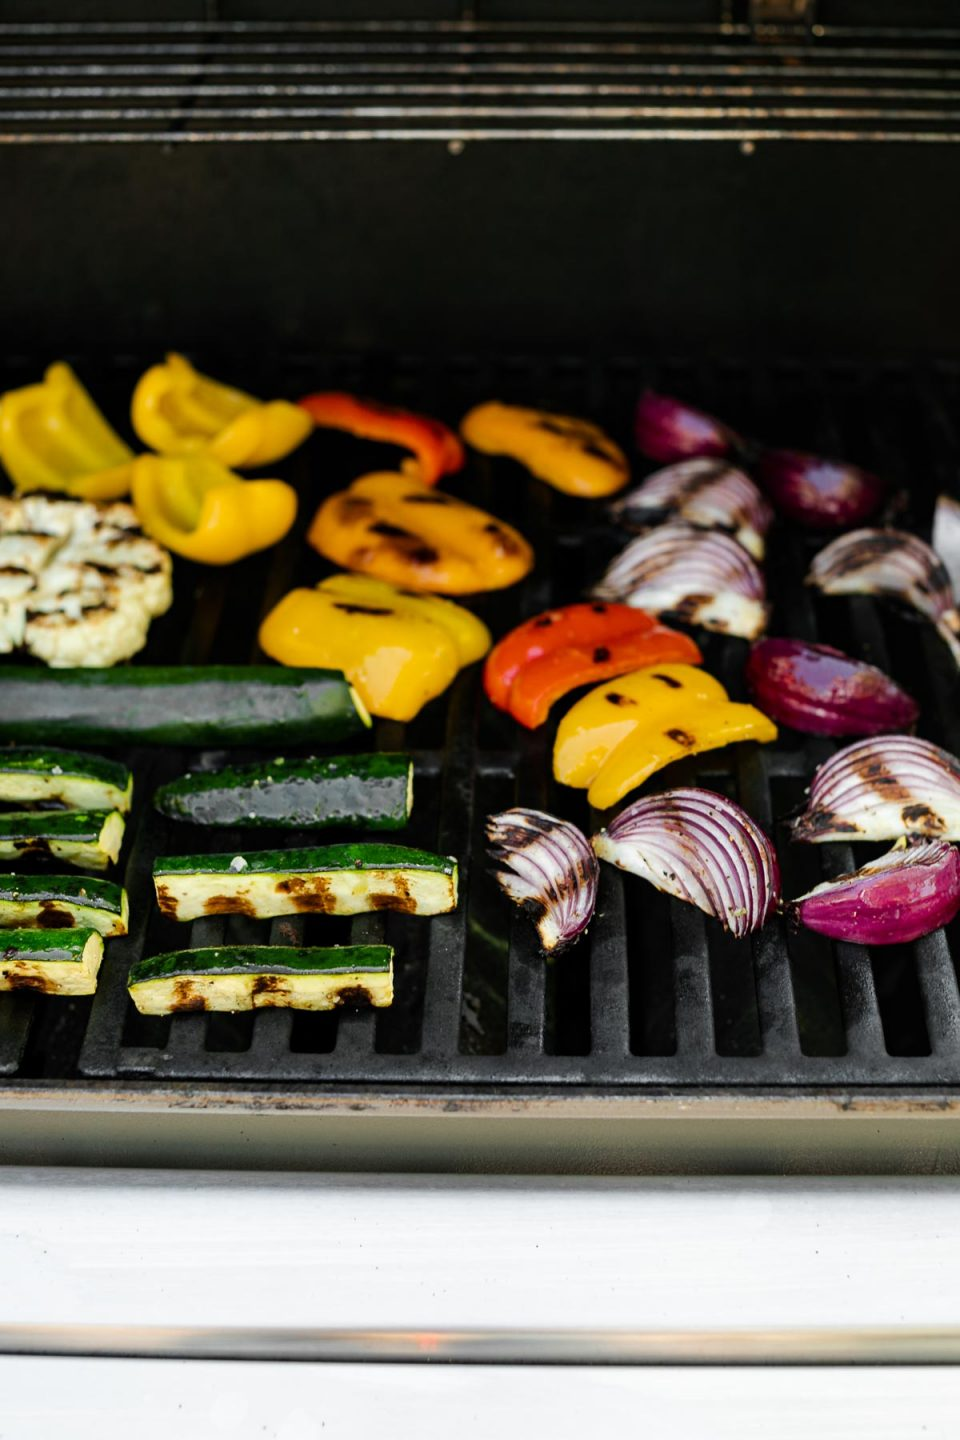 A straight on shot of a variety of grilled veggies including grilled broccolini, grilled asparagus, grilled cauliflower, grilled zucchini, grilled onion, & grilled peppers that are being grilled on gas grill grates. Many of the veggies have grill marks on them after being flipped to the other side.